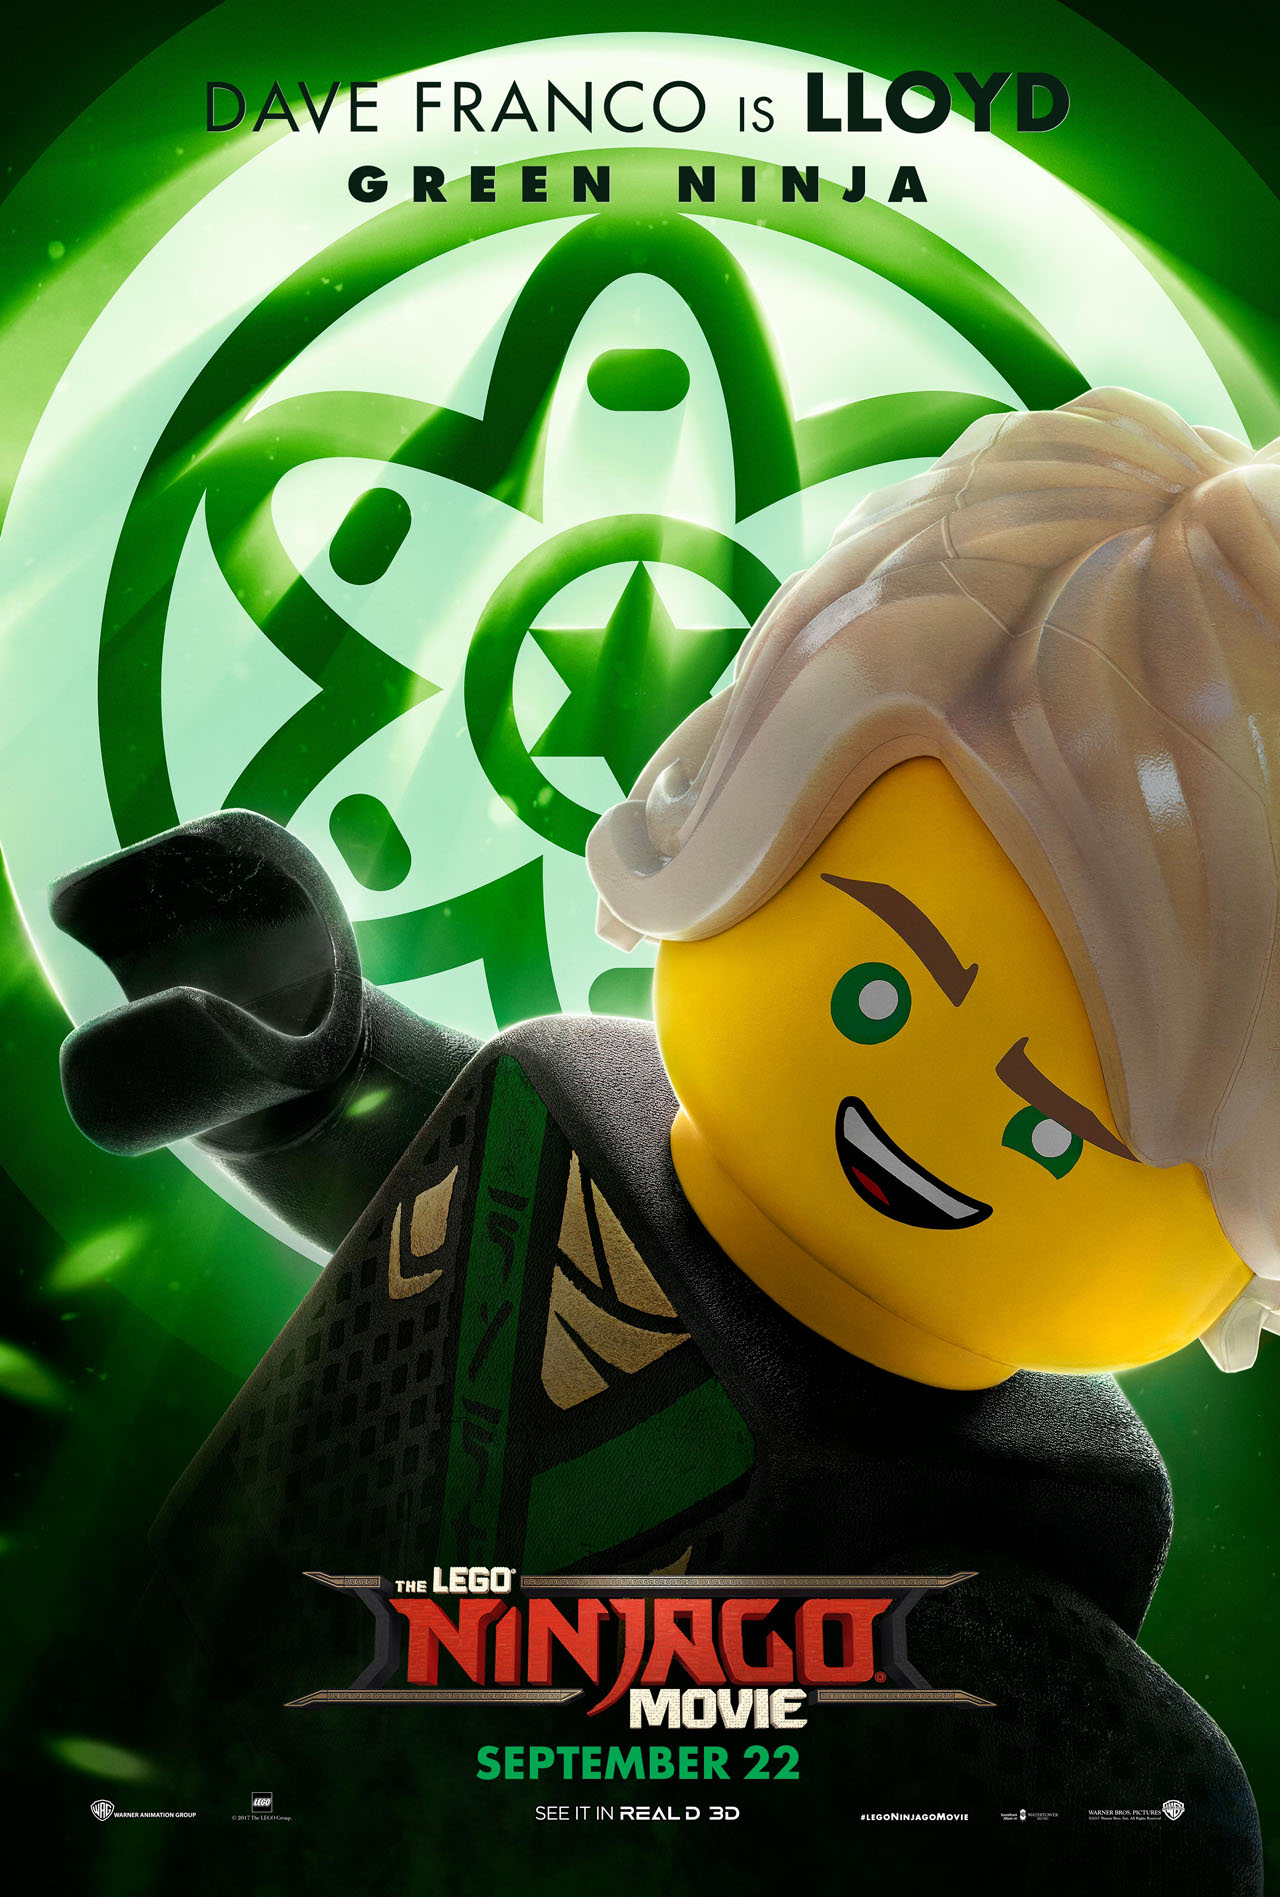 LEGO Ninjago Characters Guide - Meet the New Movie\'s Cast